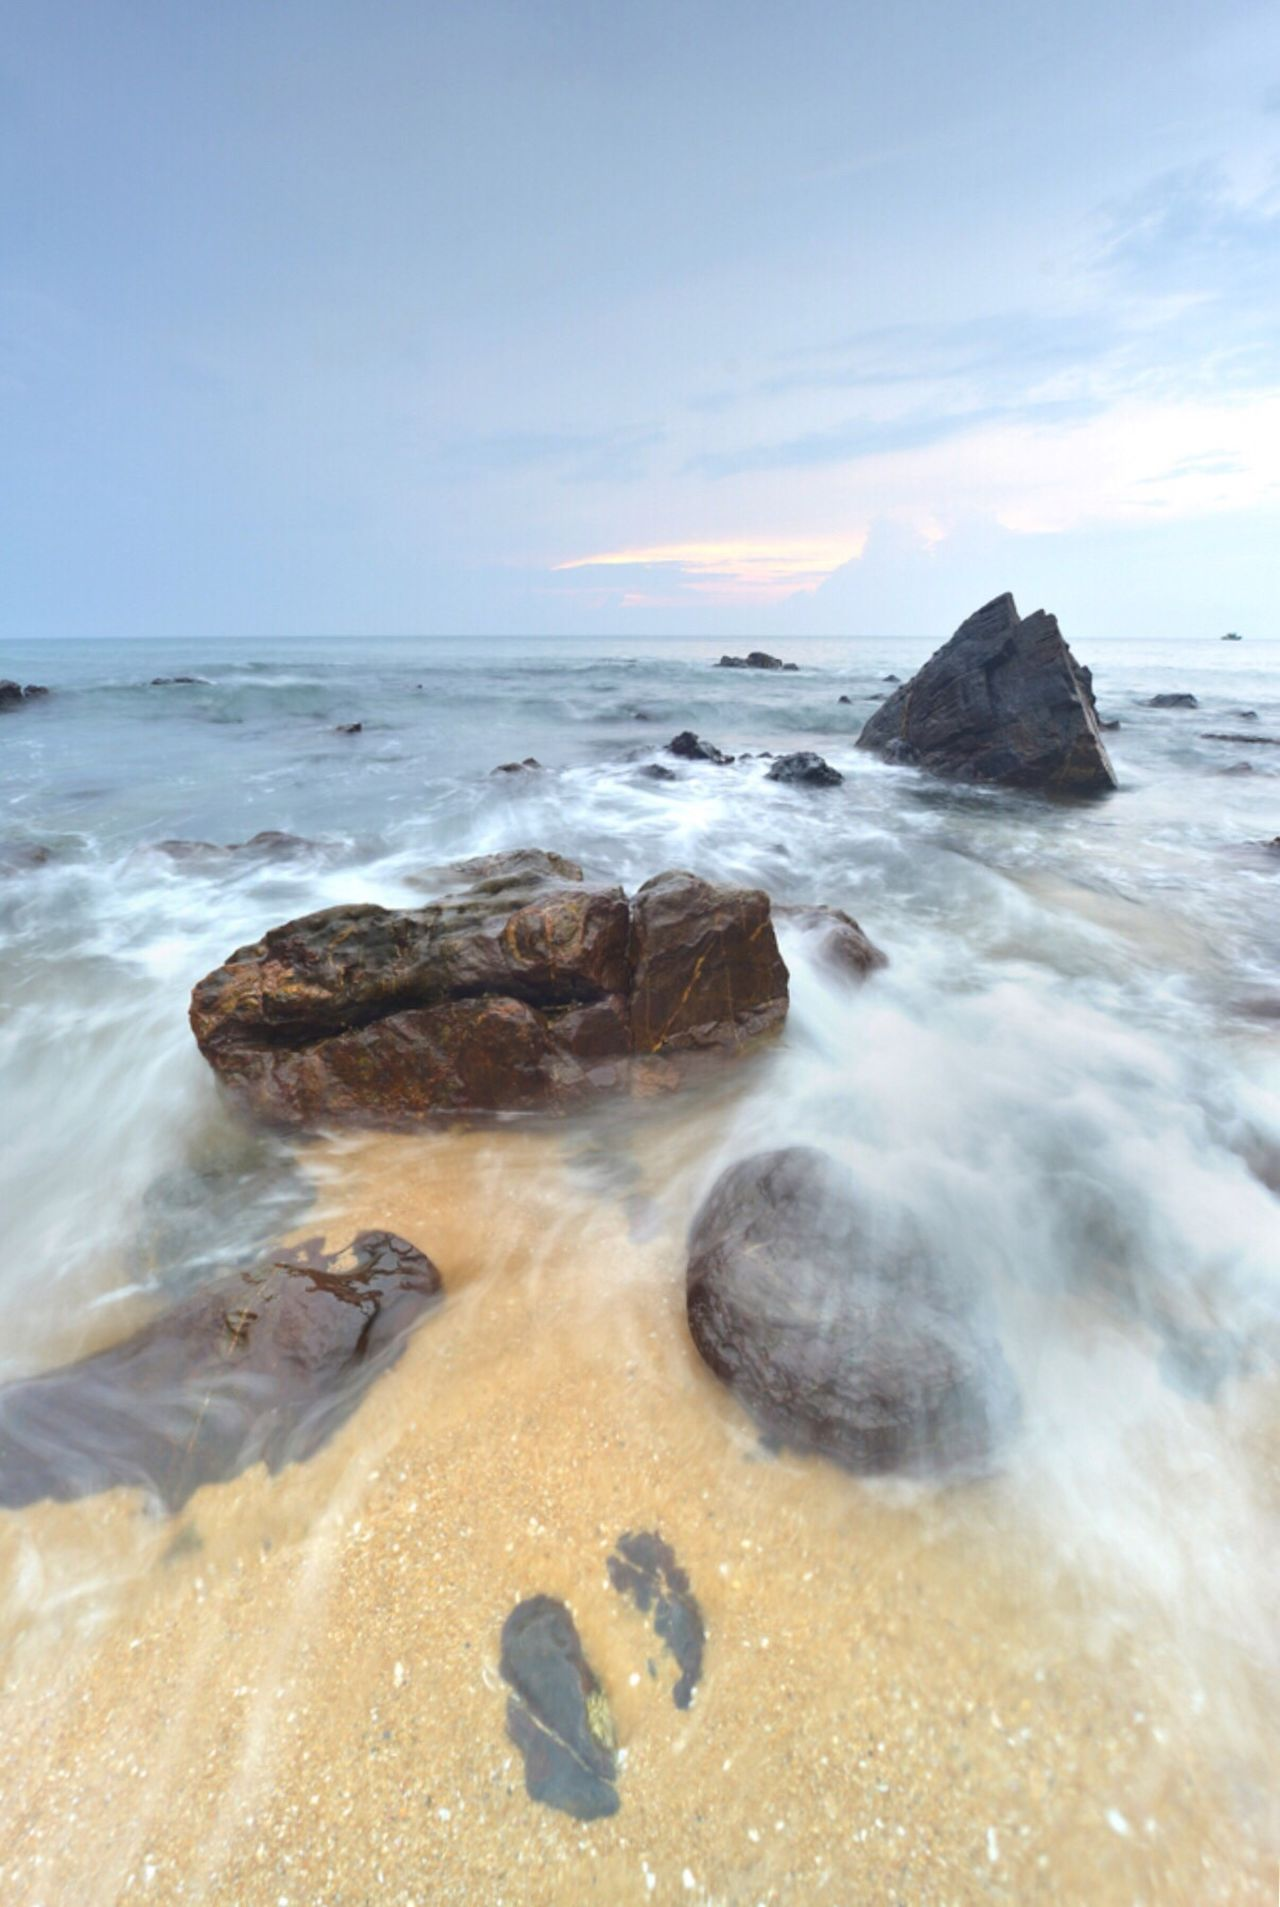 Sea Horizon Over Water Sky Beauty In Nature Beach Nature Scenics Water Rock - Object Tranquility No People Sand Wave Outdoors Day